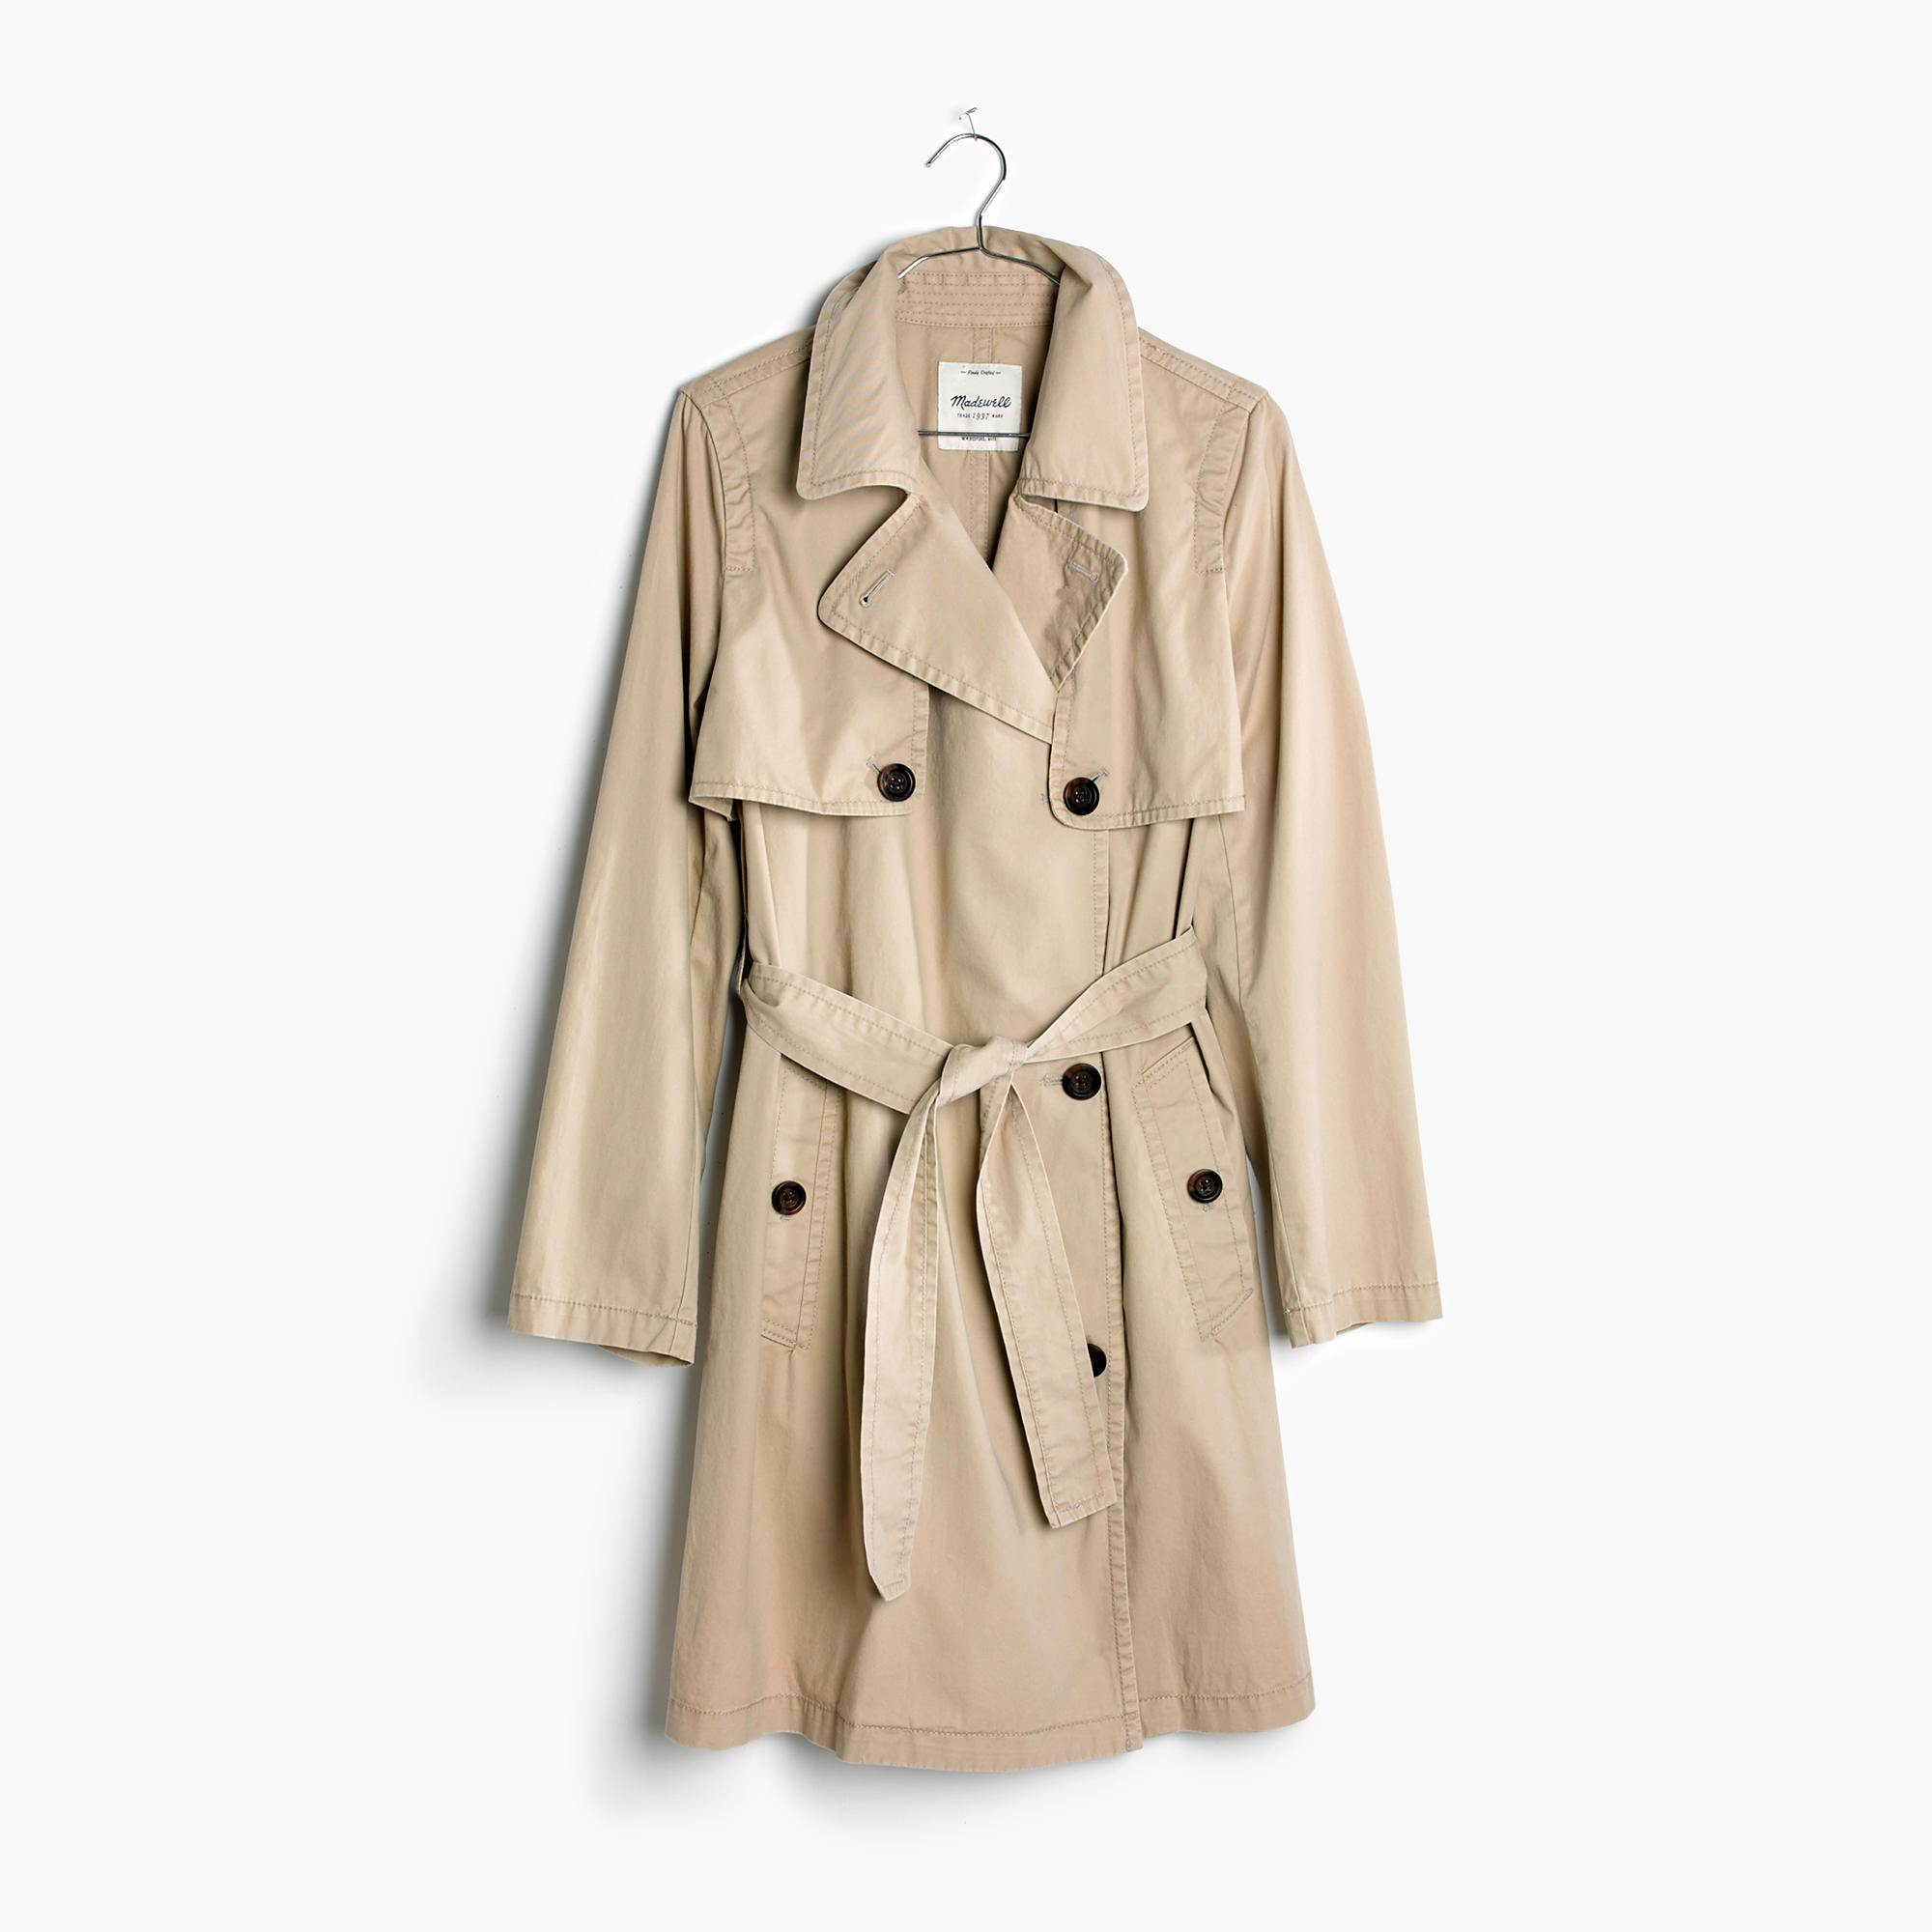 Madewell trench—15 wardrobe classics for $150 and under